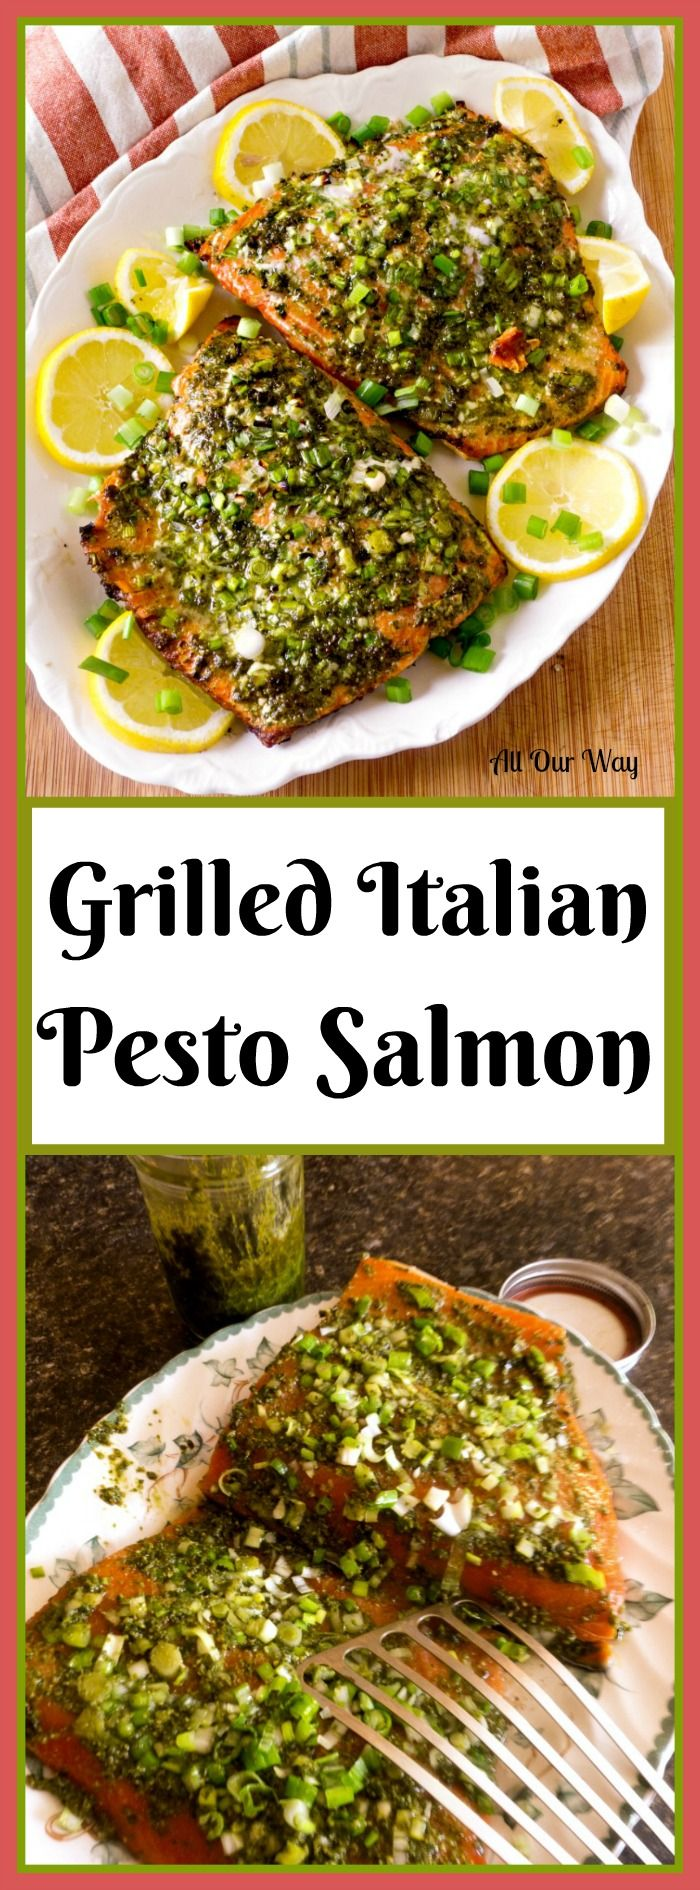 Grilled Italian Pesto Salmon 30 Minutes Start To Finish Grilled Fish  Recipessalmon